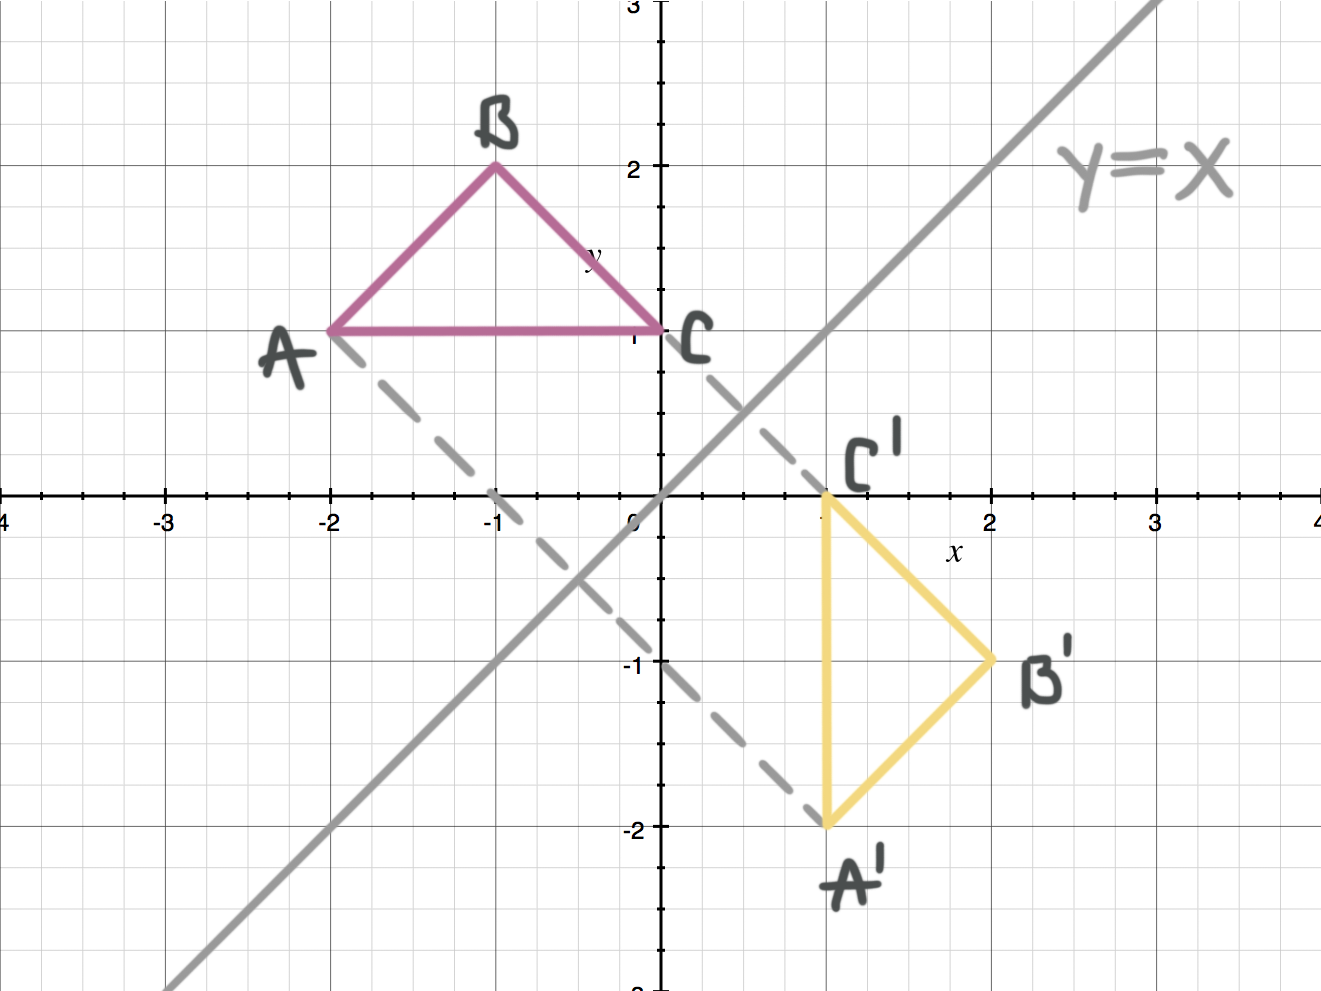 preimage and image of the triangle after the reflection over y=x